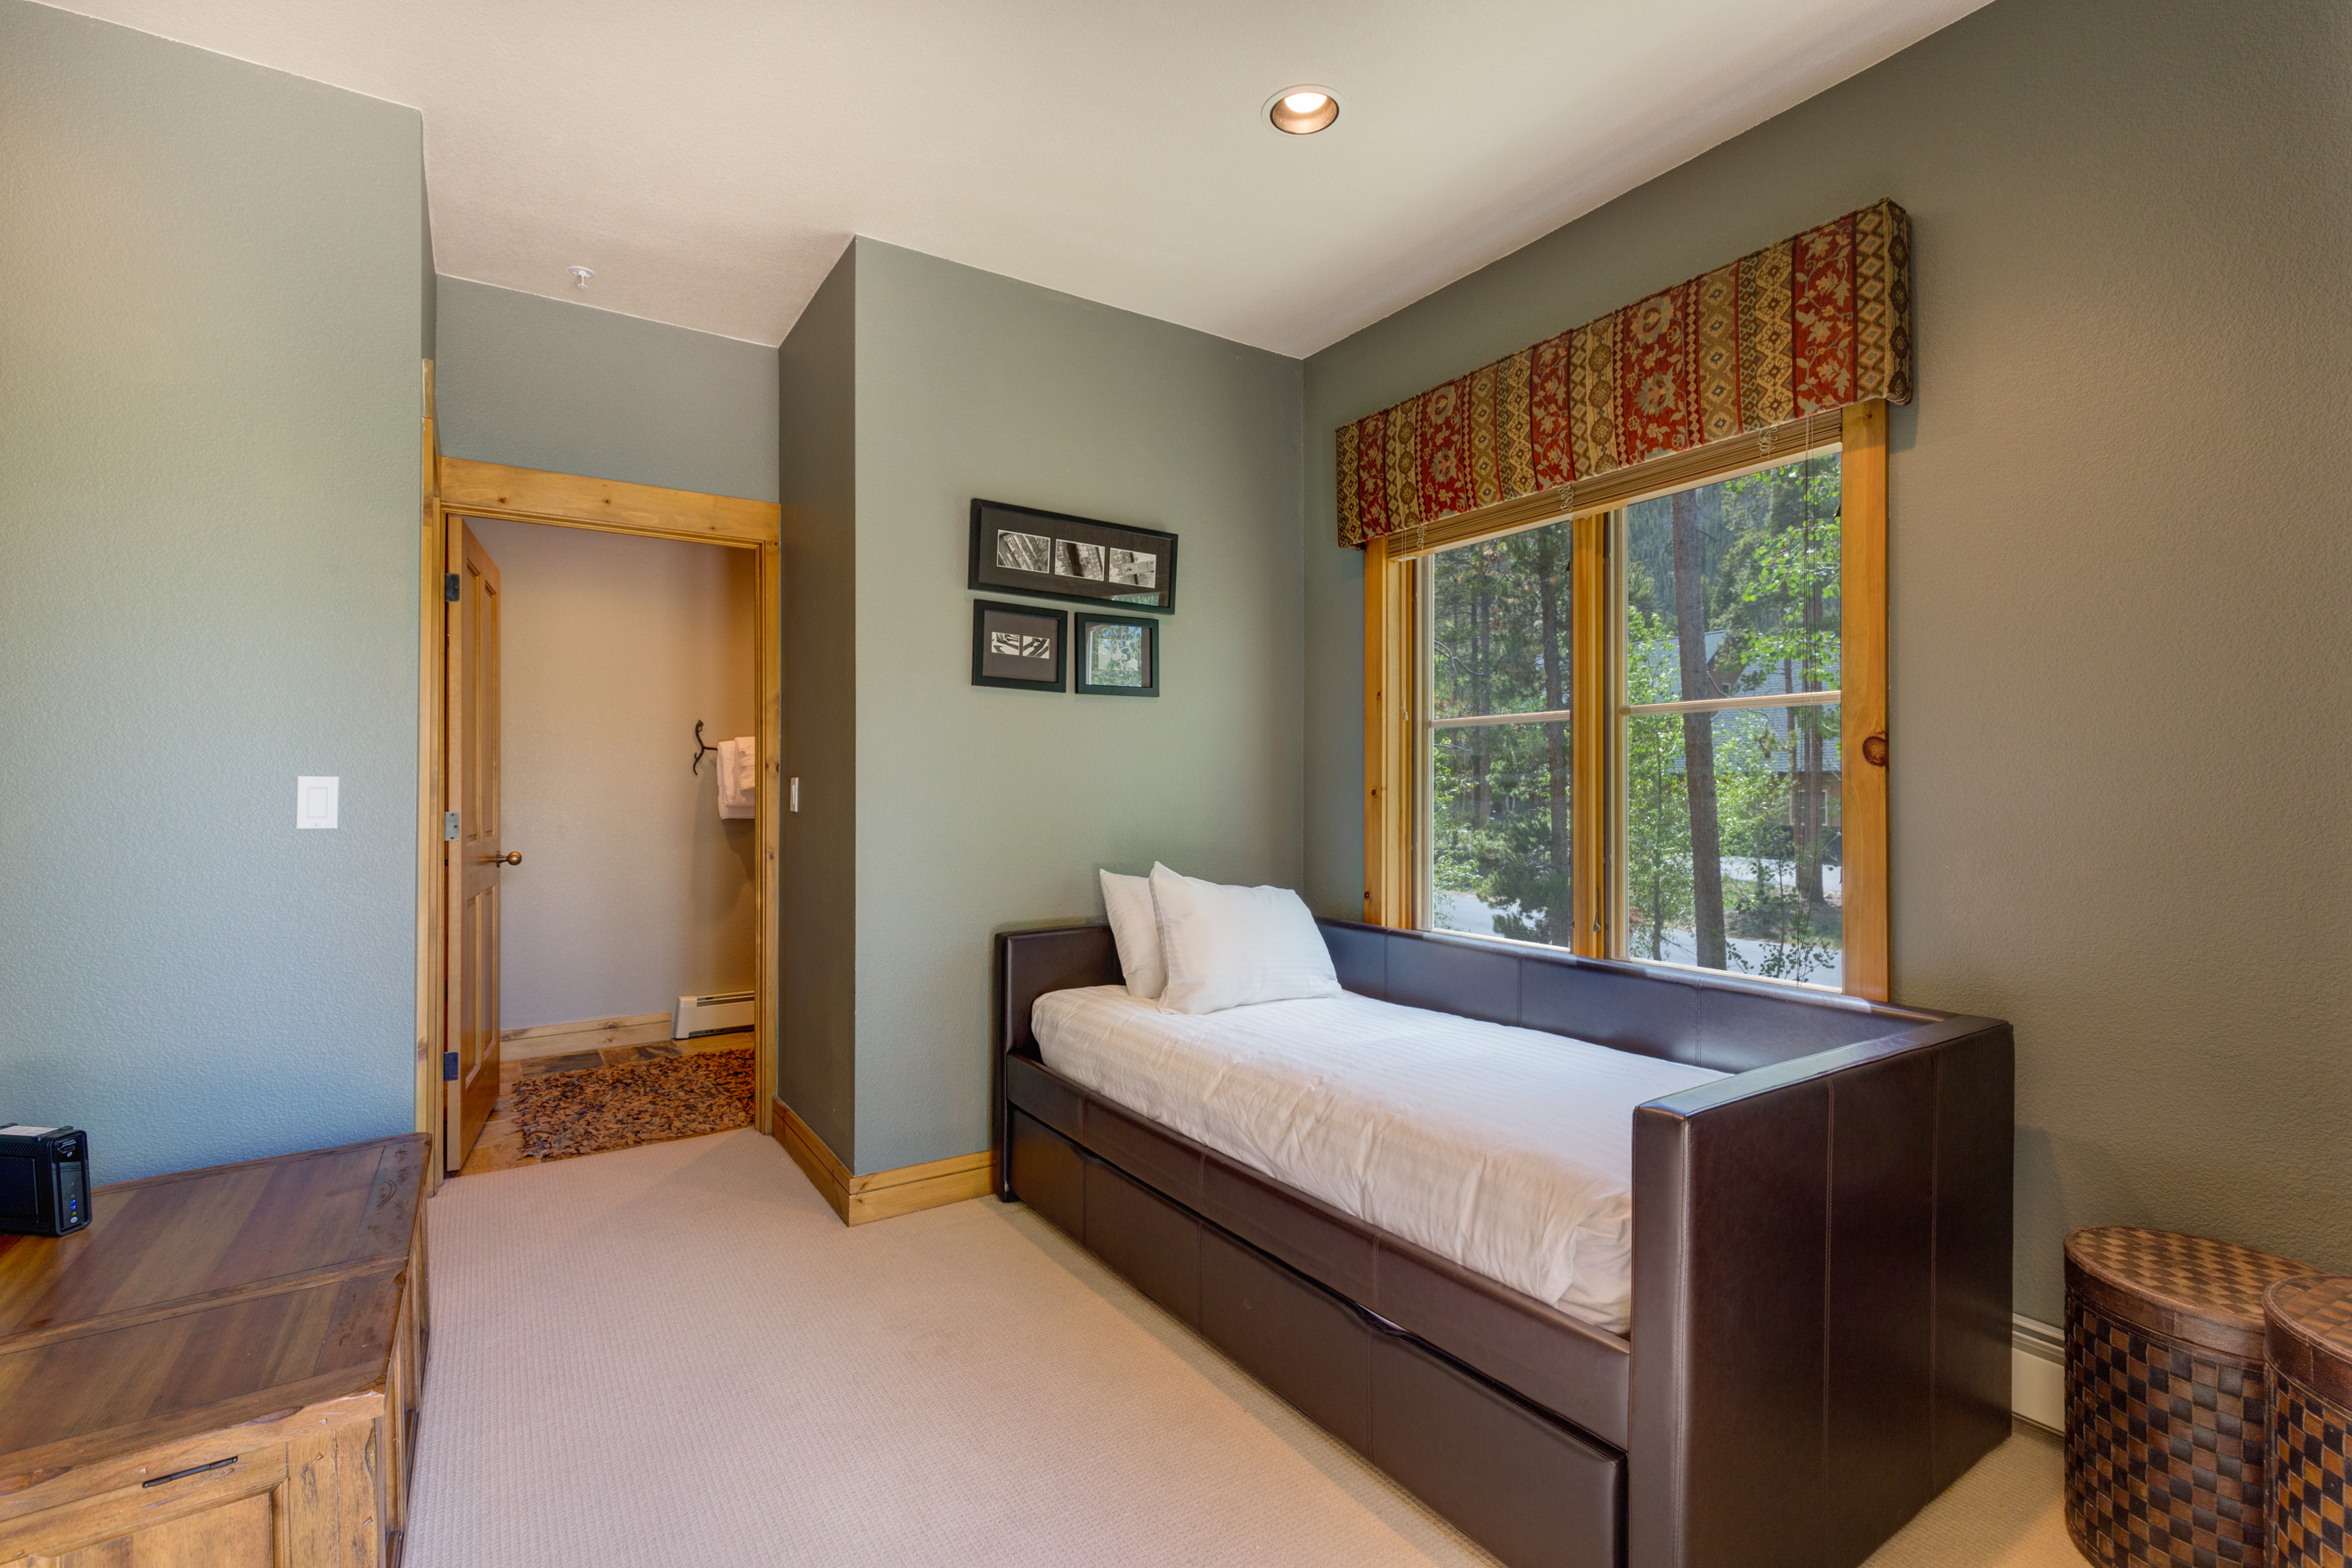 The third guest bedroom is on the main level and features a twin-sized bed with a twin trundle. It has its own access to the guest bathroom and access to the private patio.